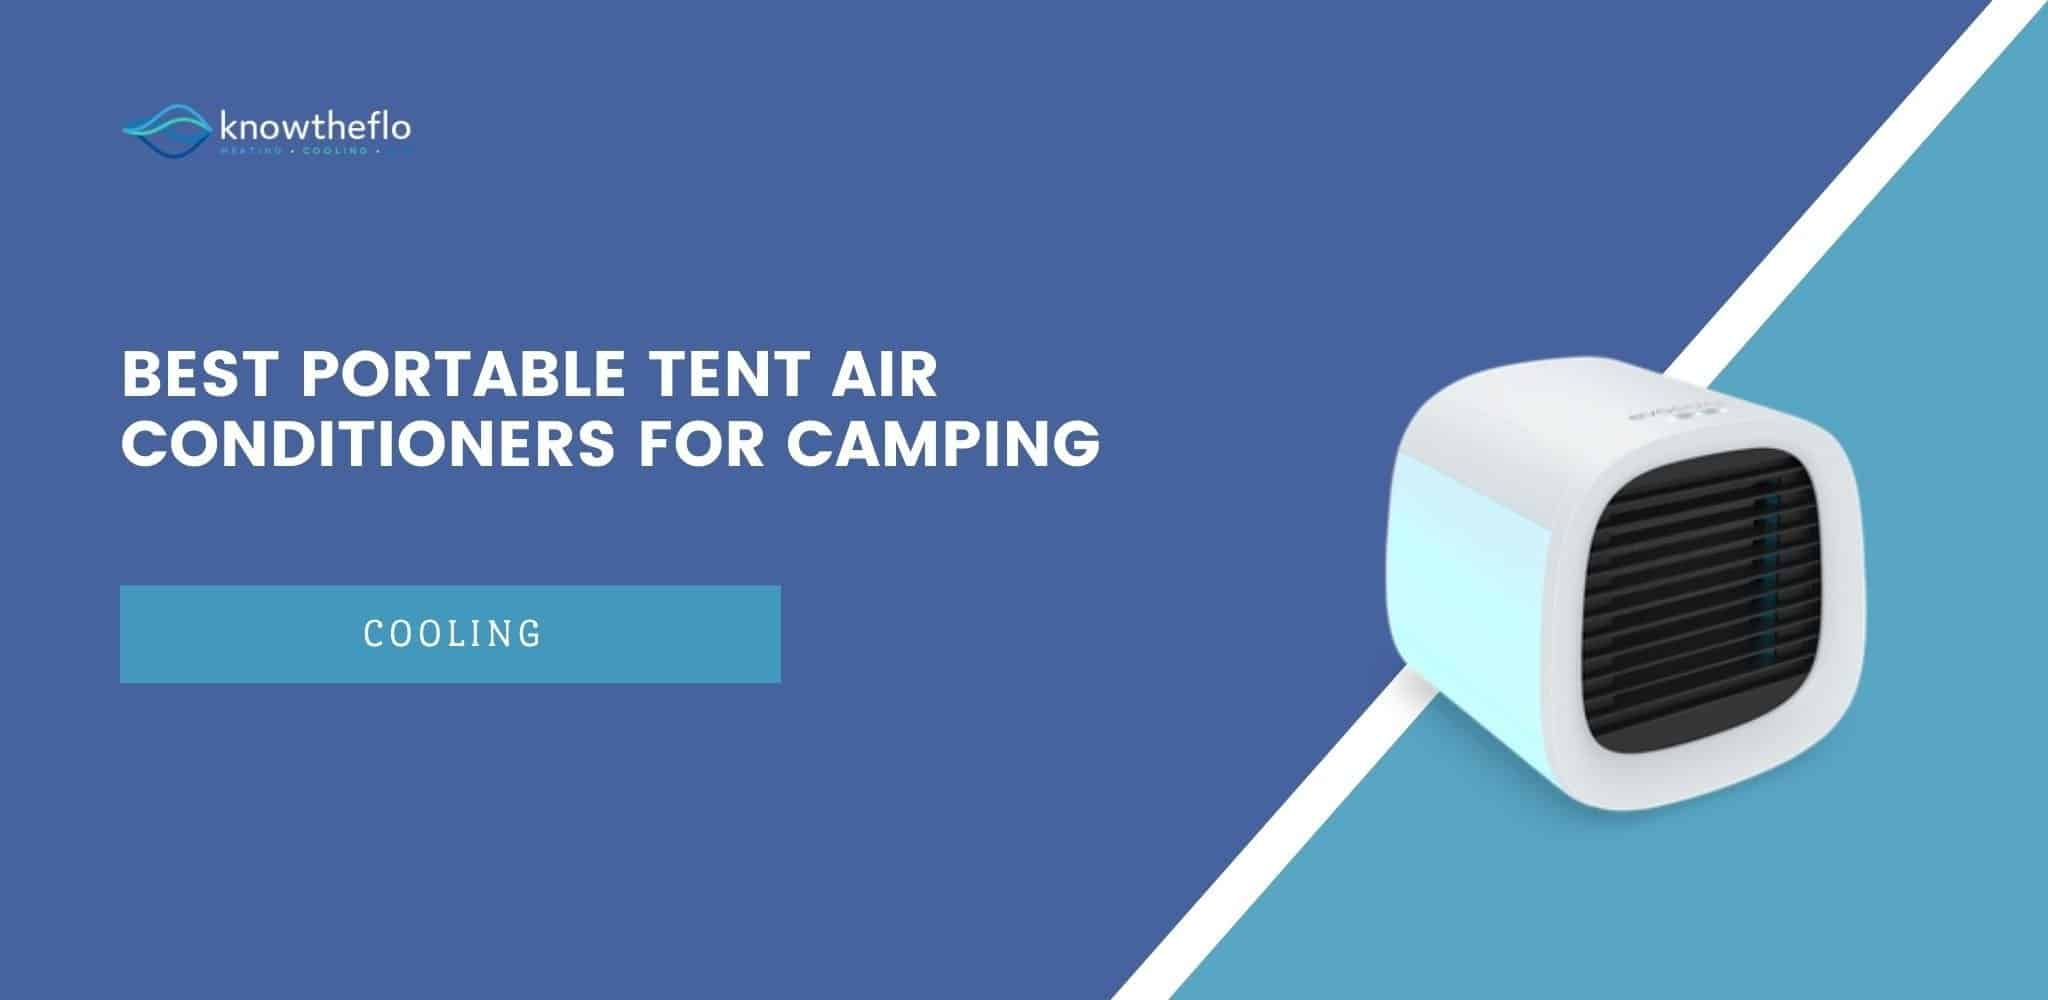 Best Portable Tent Air Conditioners for Camping 2020 - 2020